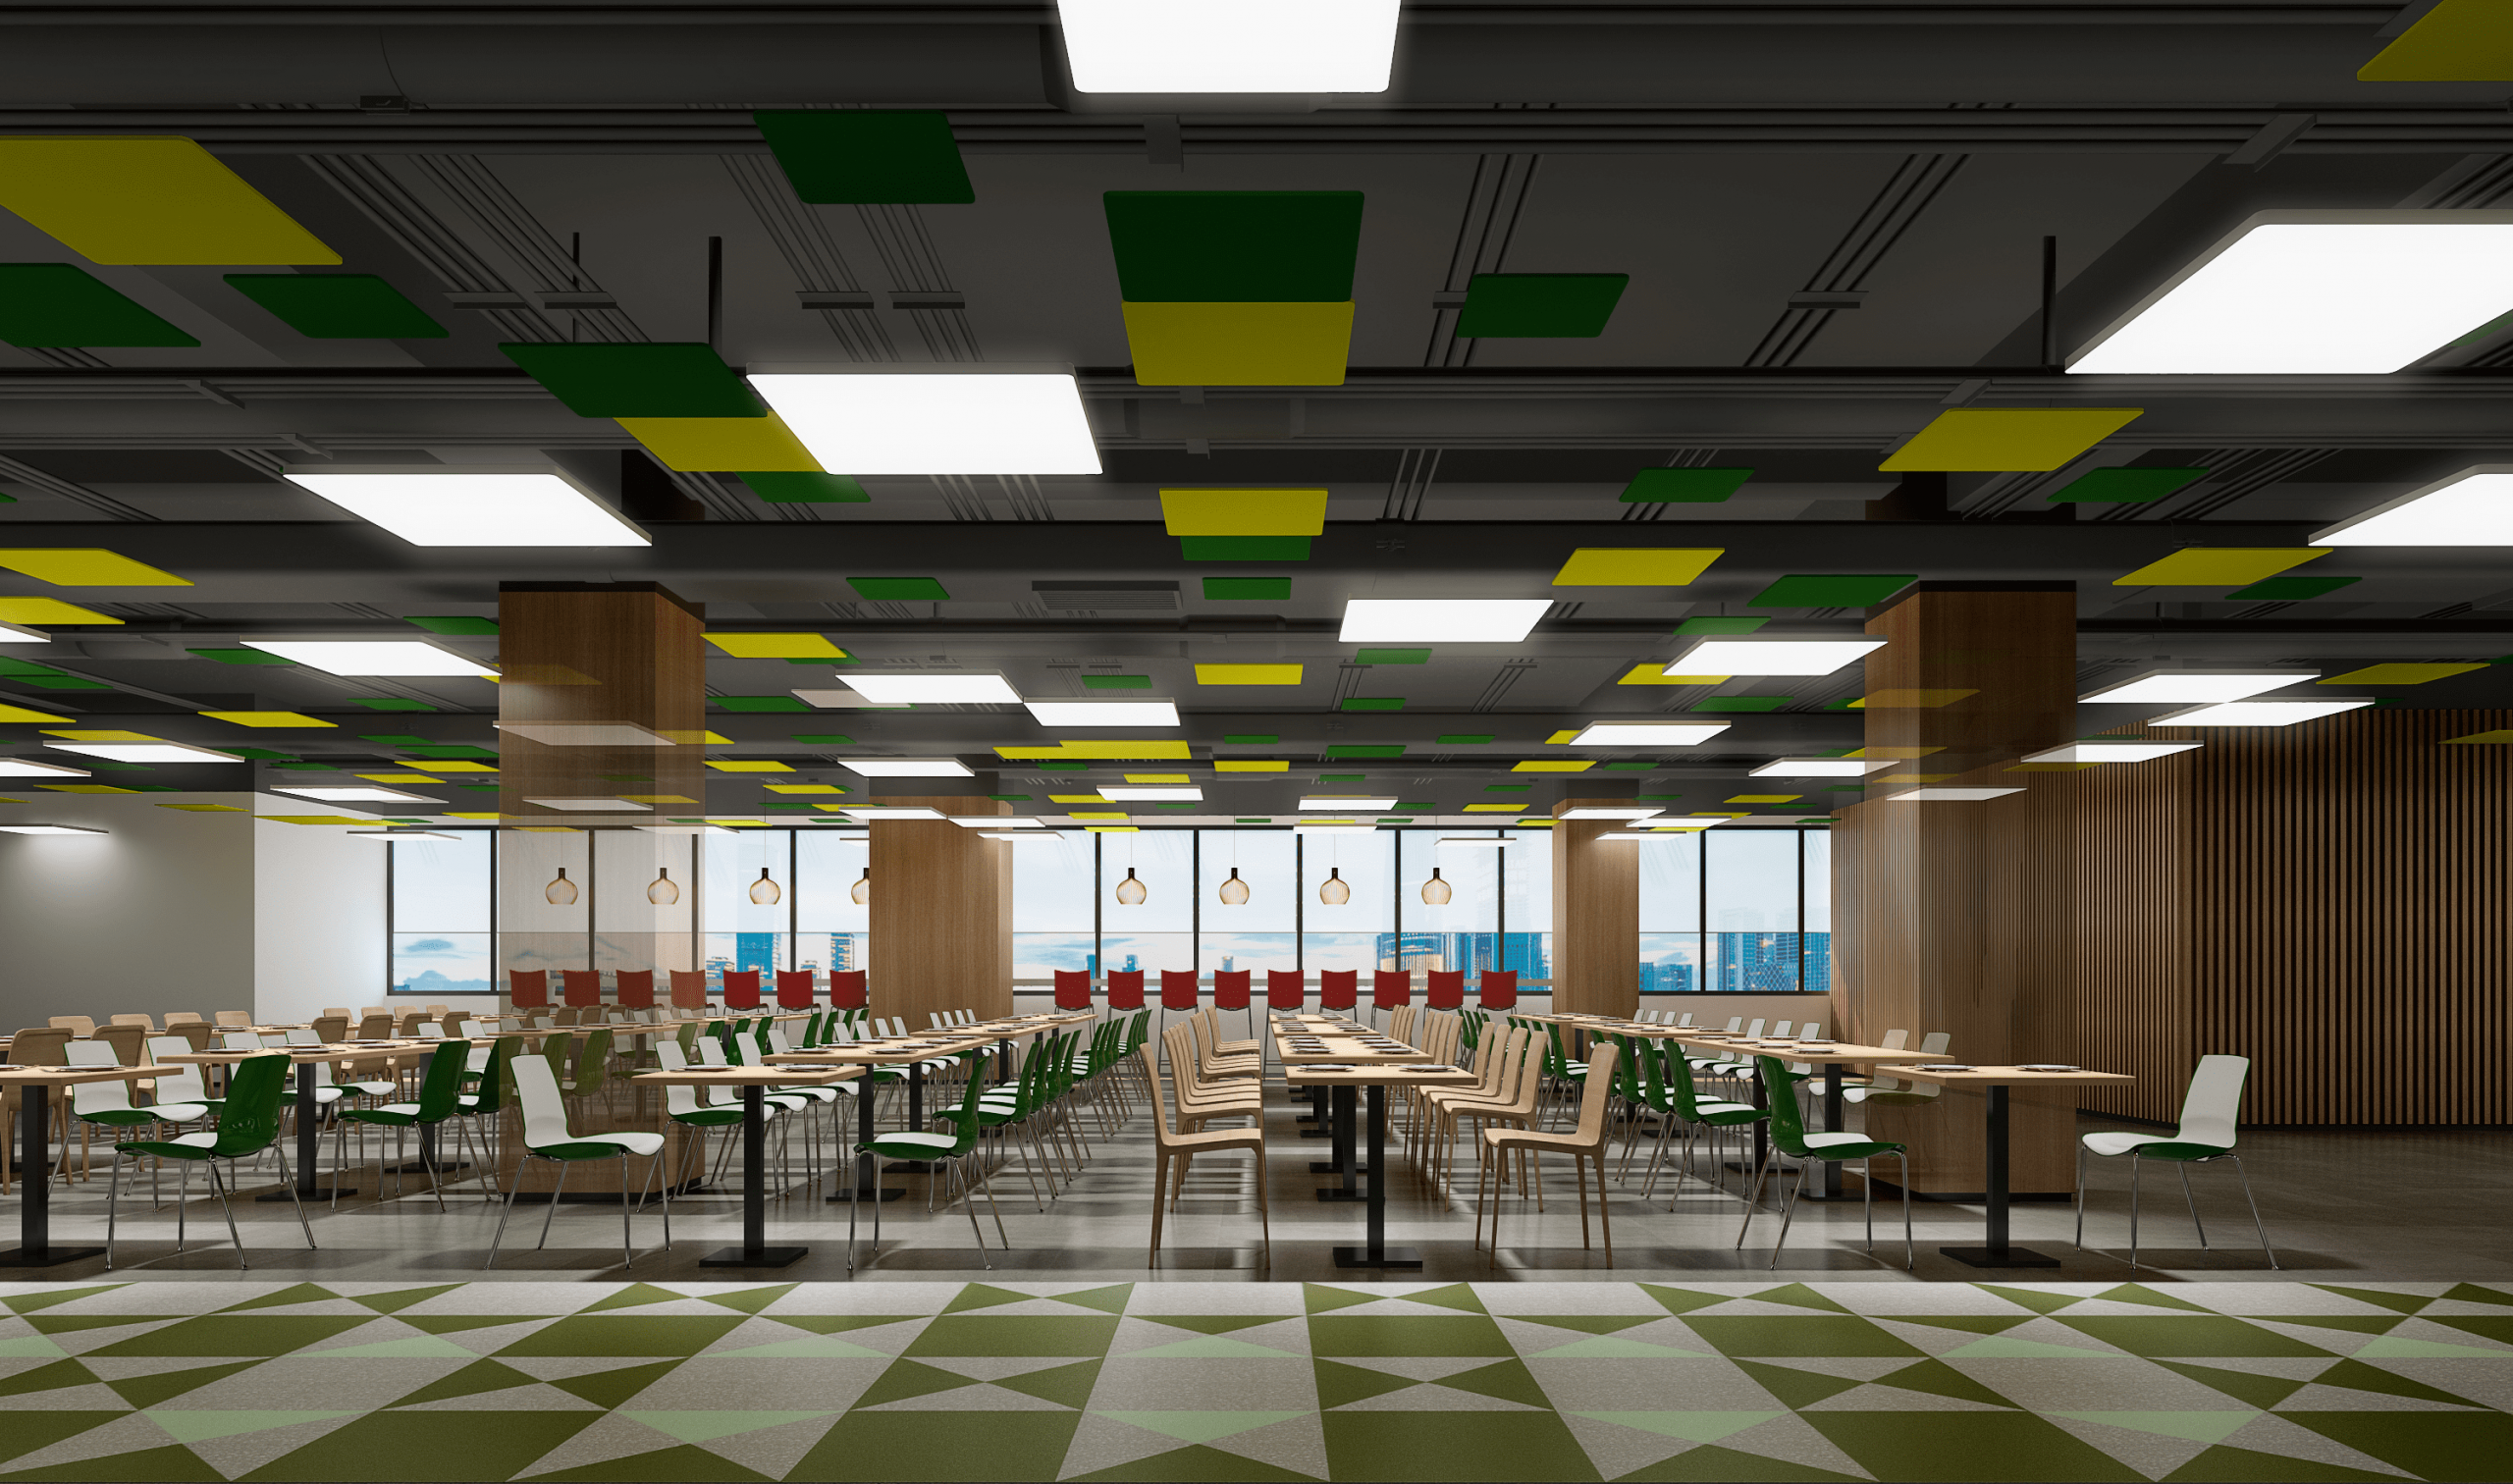 No one said that the staff canteen renderings can be designed like this.